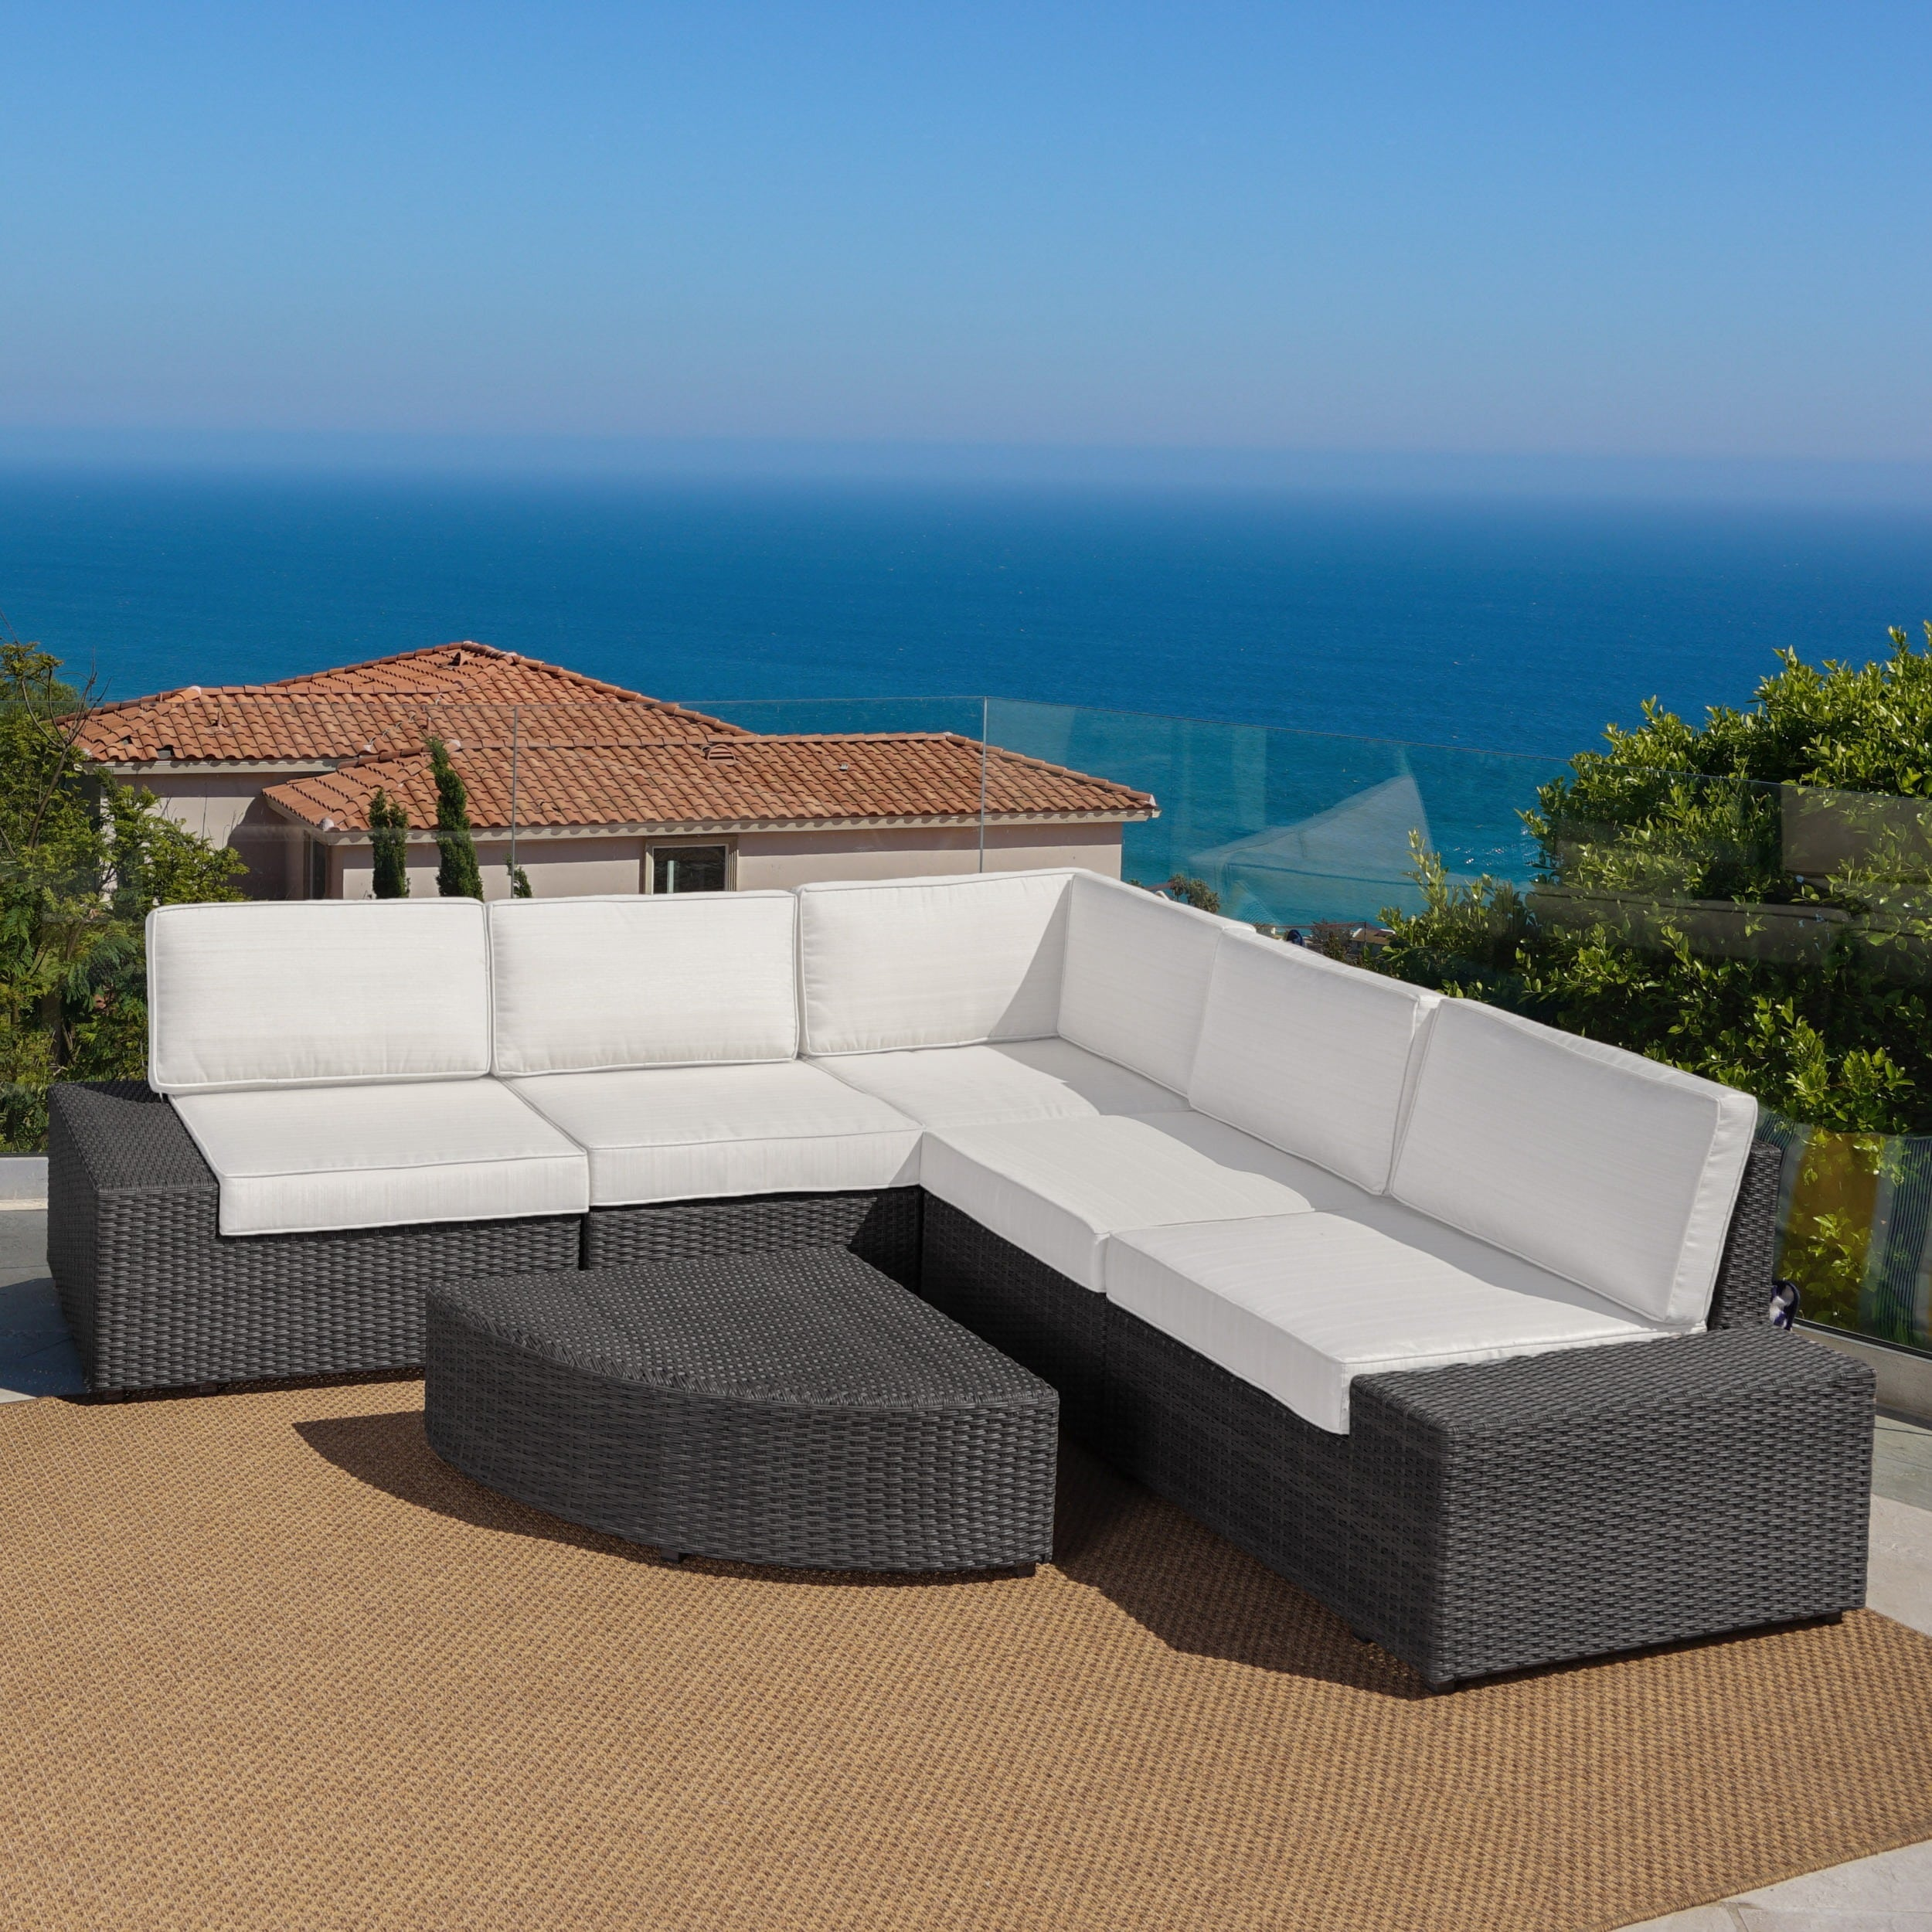 Shop Clay Alder Home Best Sail Bridge Outdoor 6 Piece Wicker Sofa Set   On  Sale   Free Shipping Today   Overstock.com   21258219